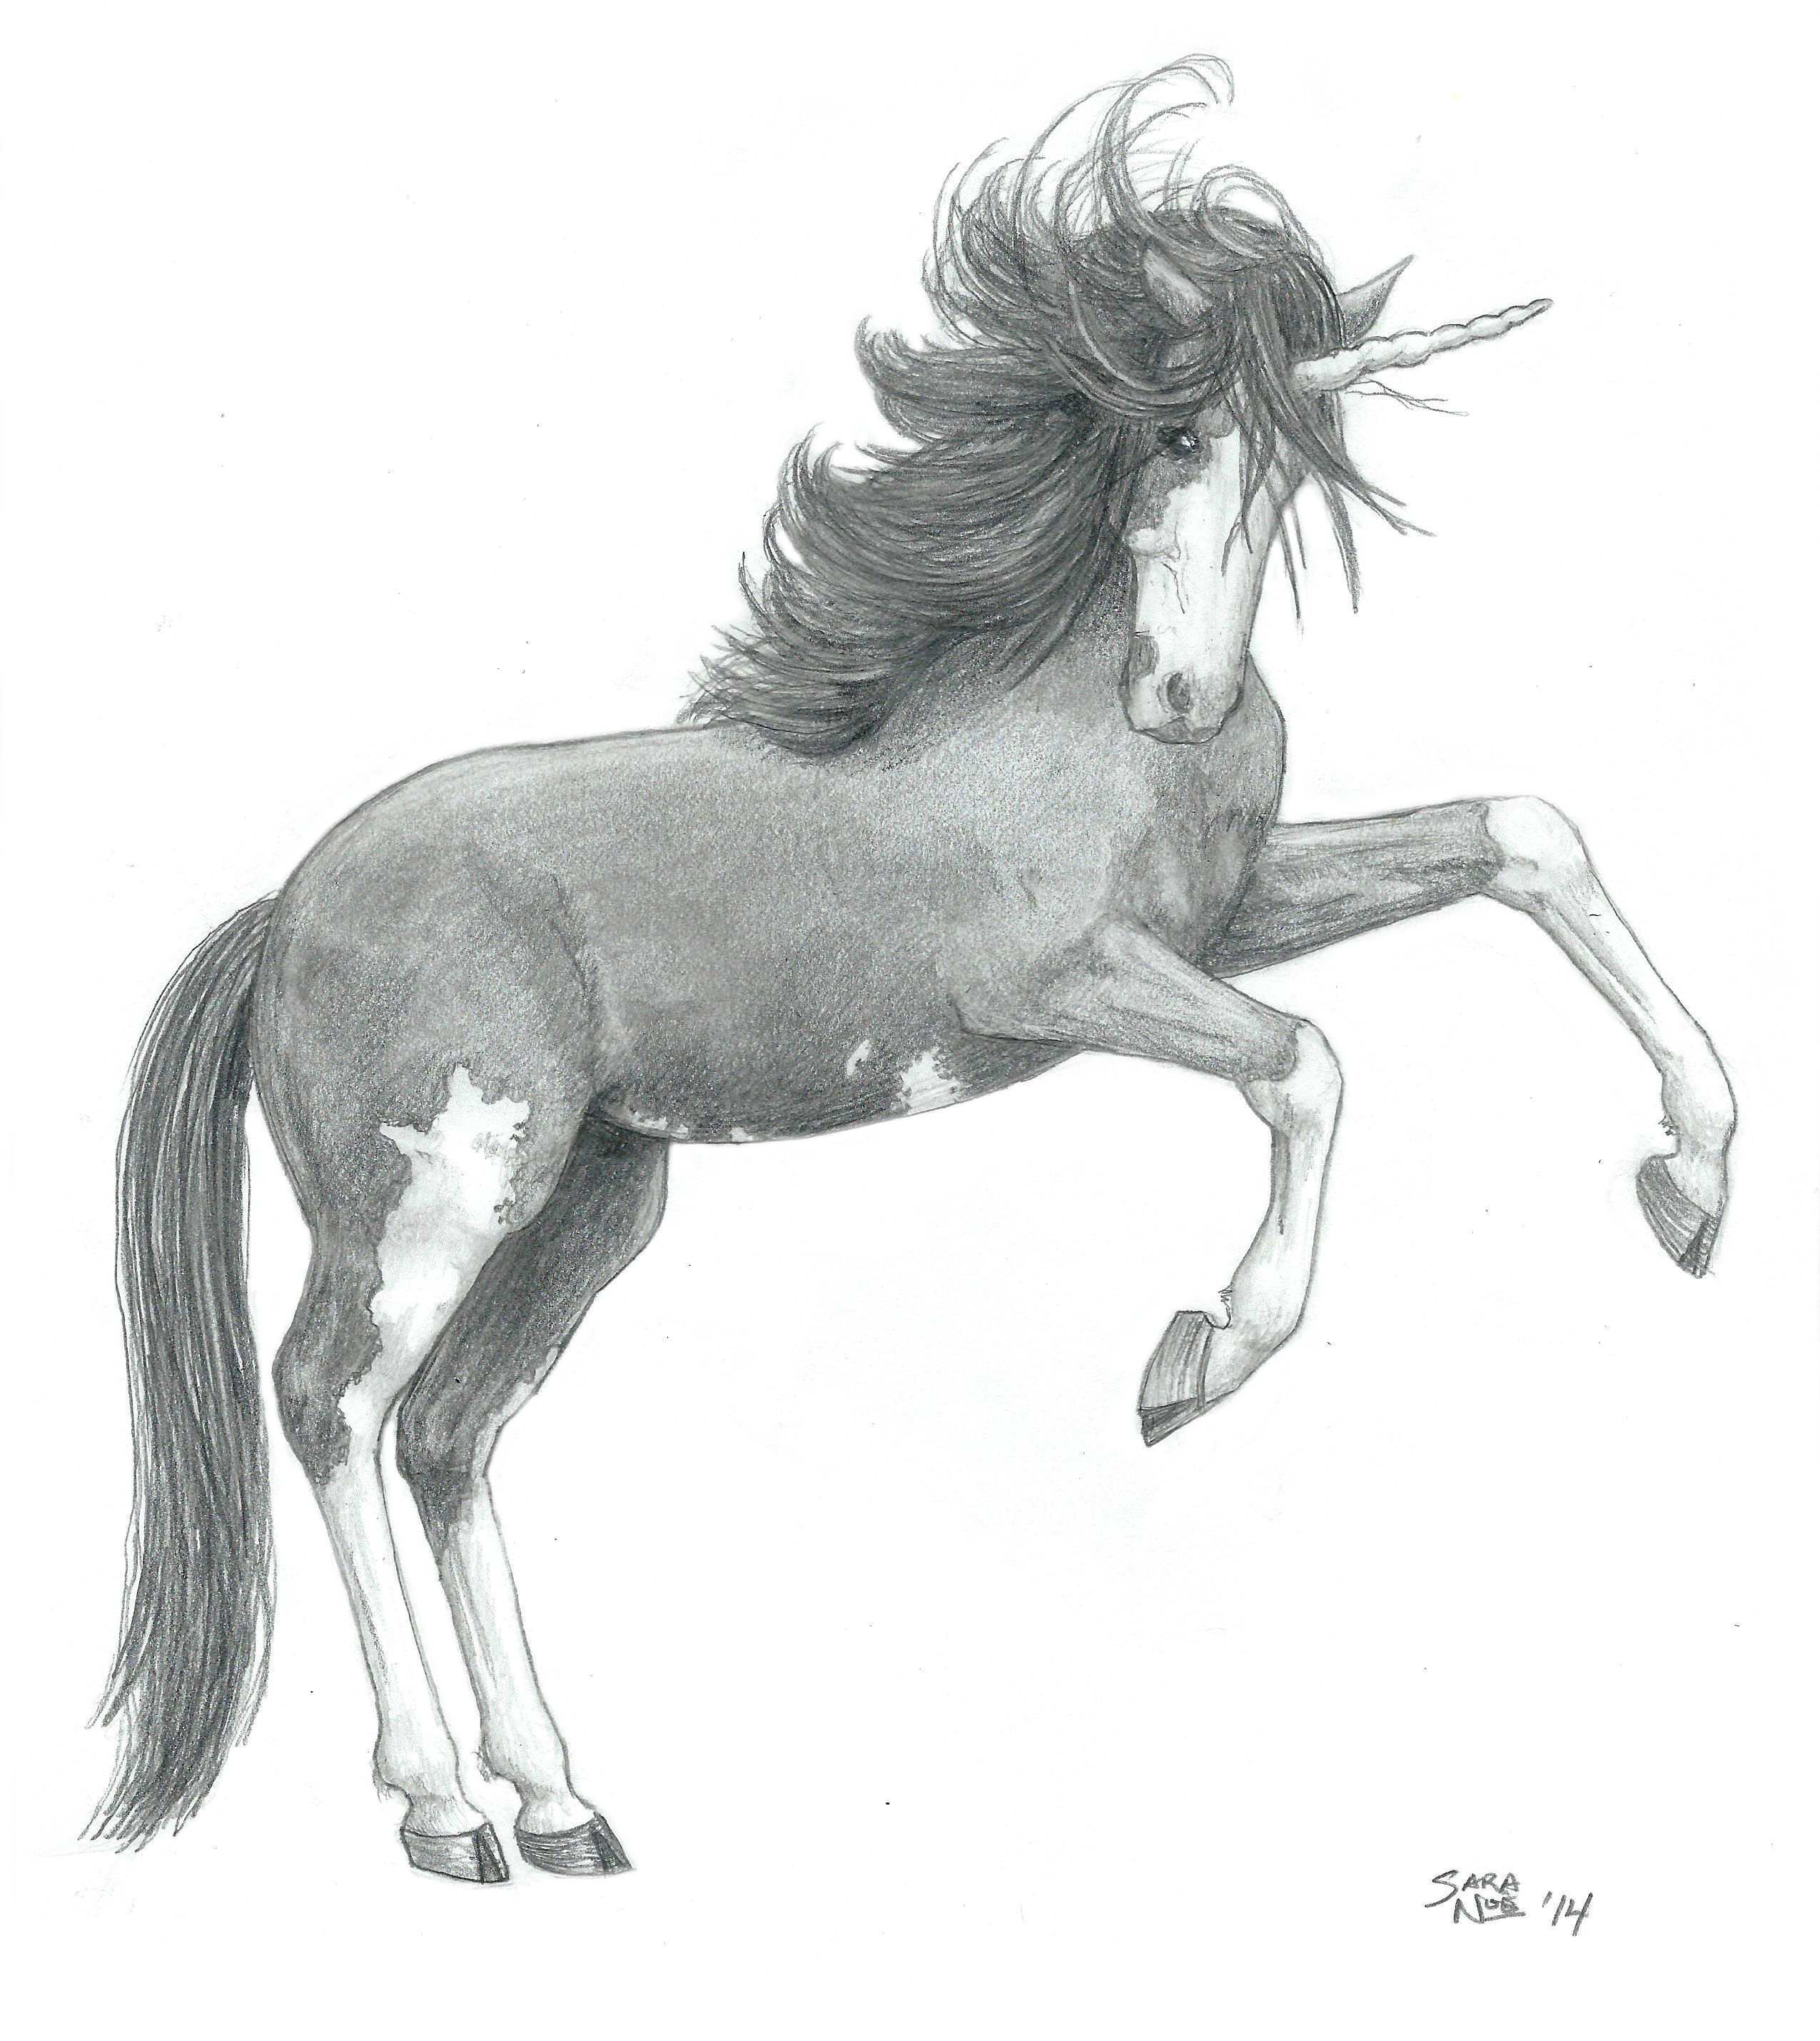 Unicorn Chronicles of Avilesor pencil artwork horse Sara A. Noe